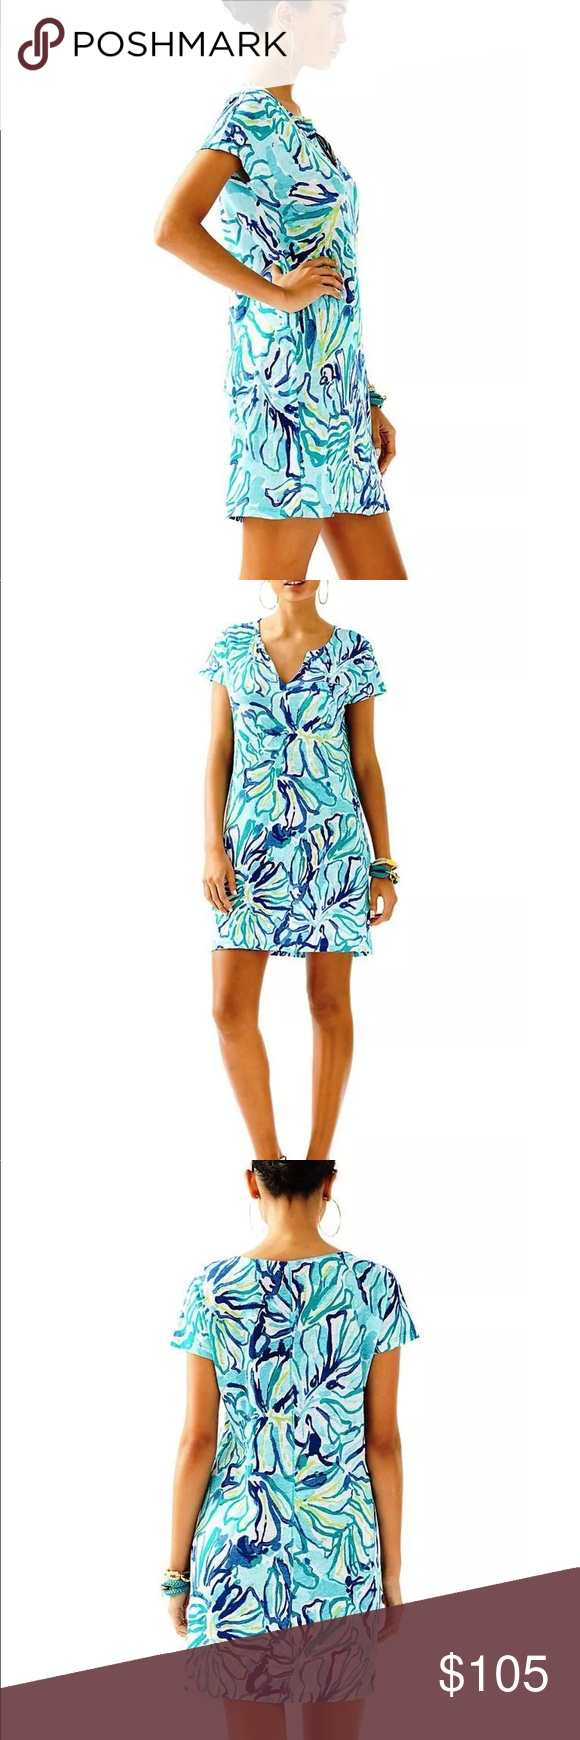 bcbb3d87966 Lilly Pulitzer Duval Linen Dress Pool Blue The Duval Dress is the ultimate  t-shirt